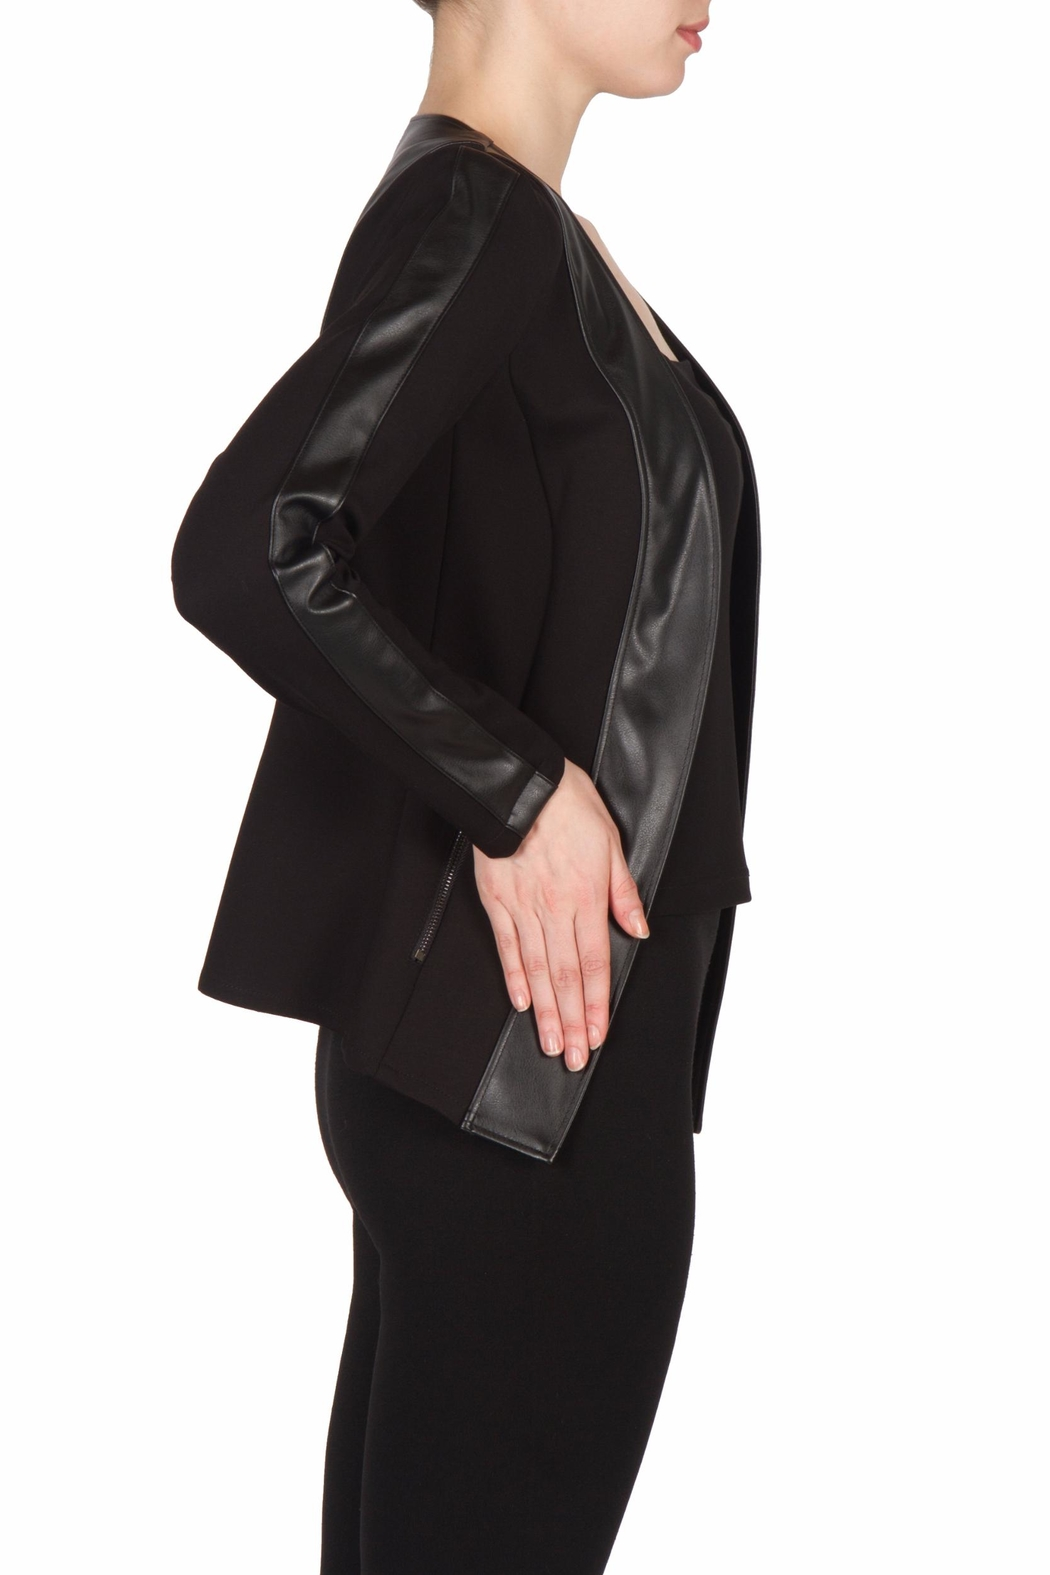 Joseph Ribkoff Leatherette Trimmed Jacket - Front Full Image